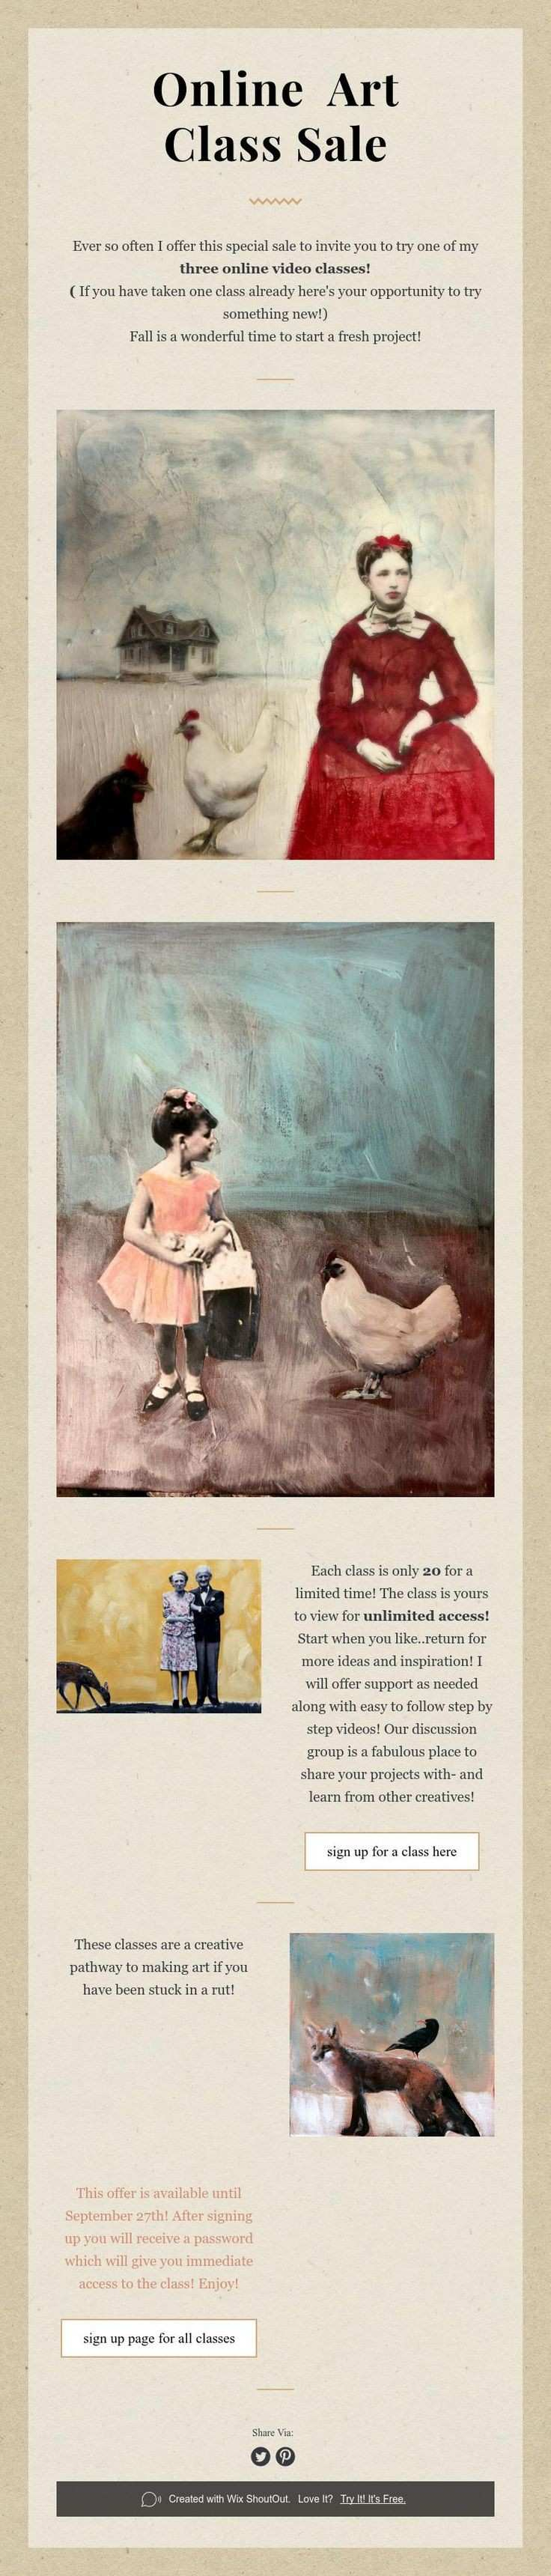 33 best heather murray art promotions images on Pinterest